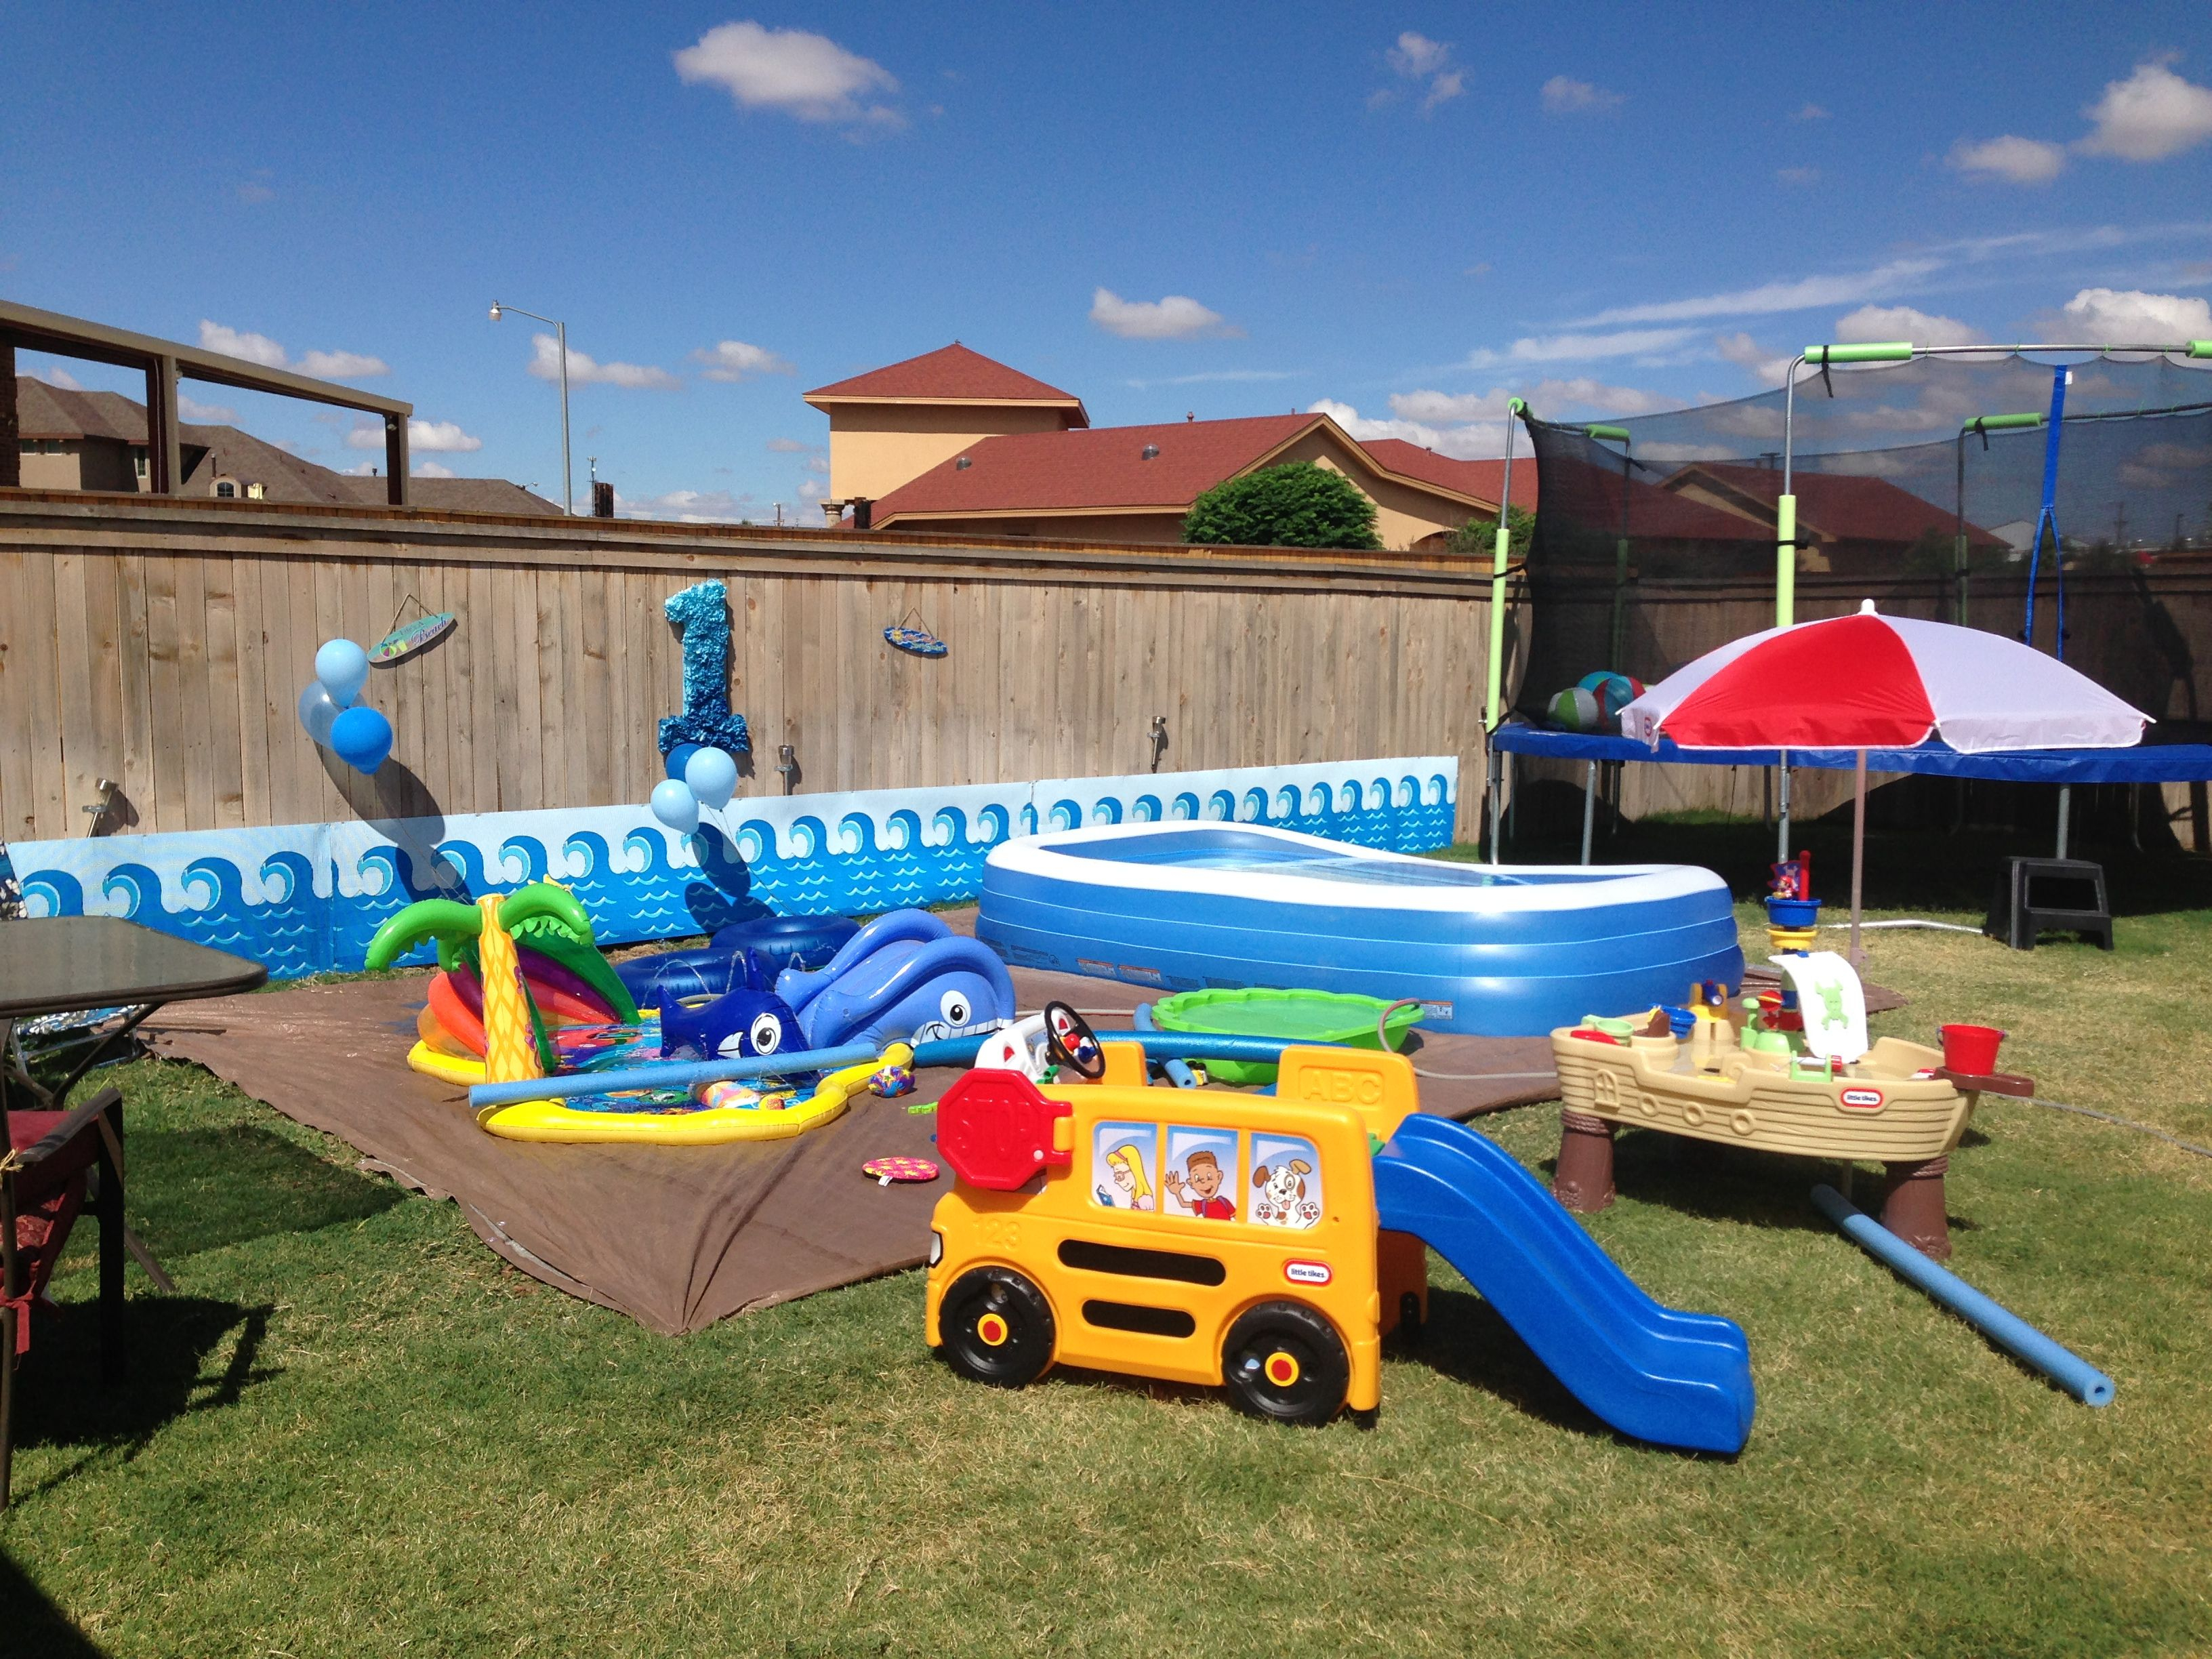 Water Party Maddox Is One In 2019 Backyard Birthday Parties inside Backyard Water Party Ideas